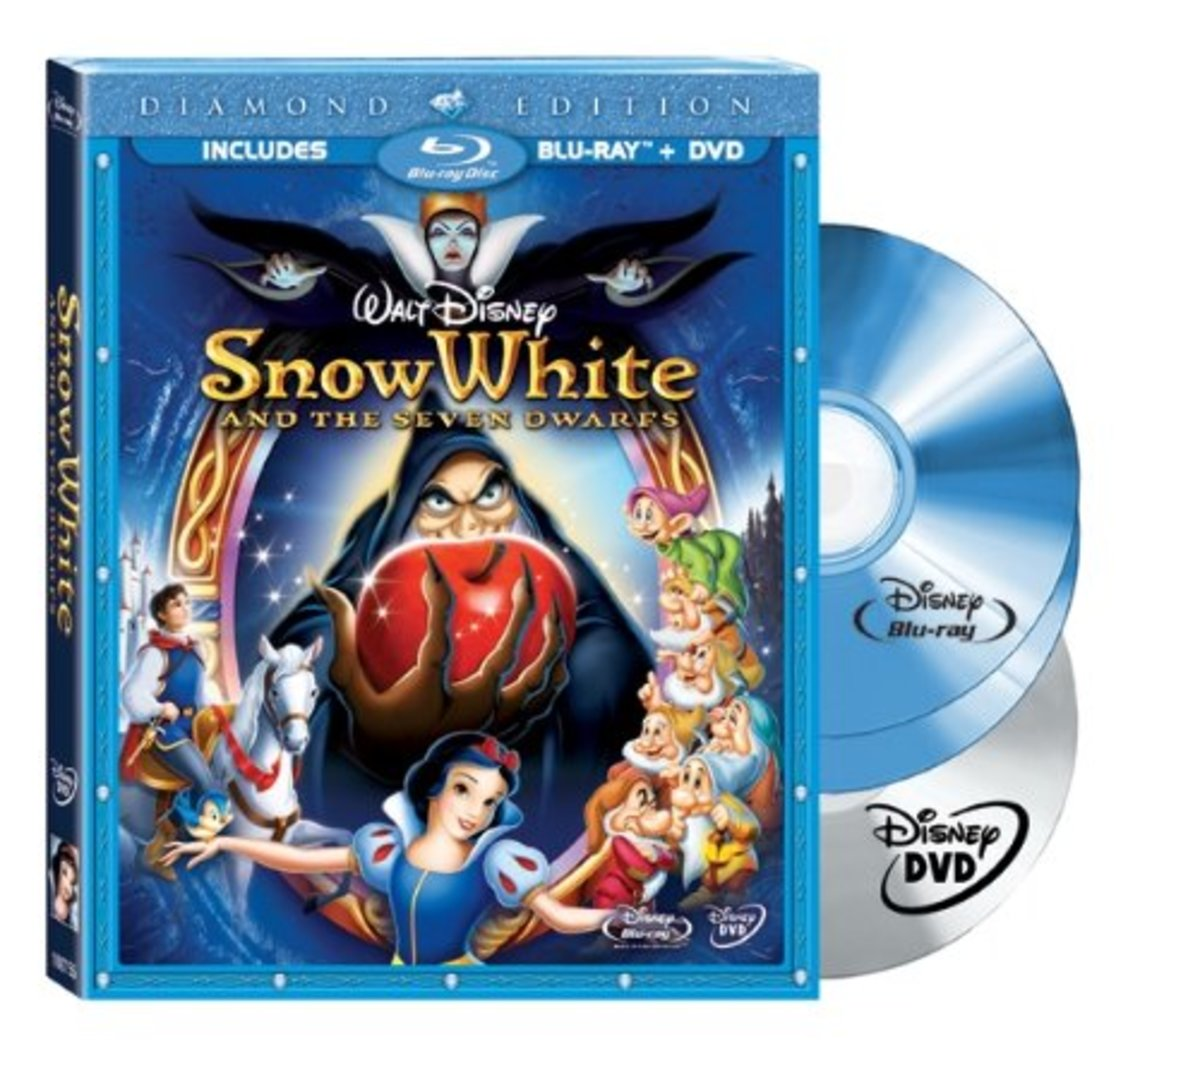 Snow White and the Seven Dwarfs Blu-ray and DVD